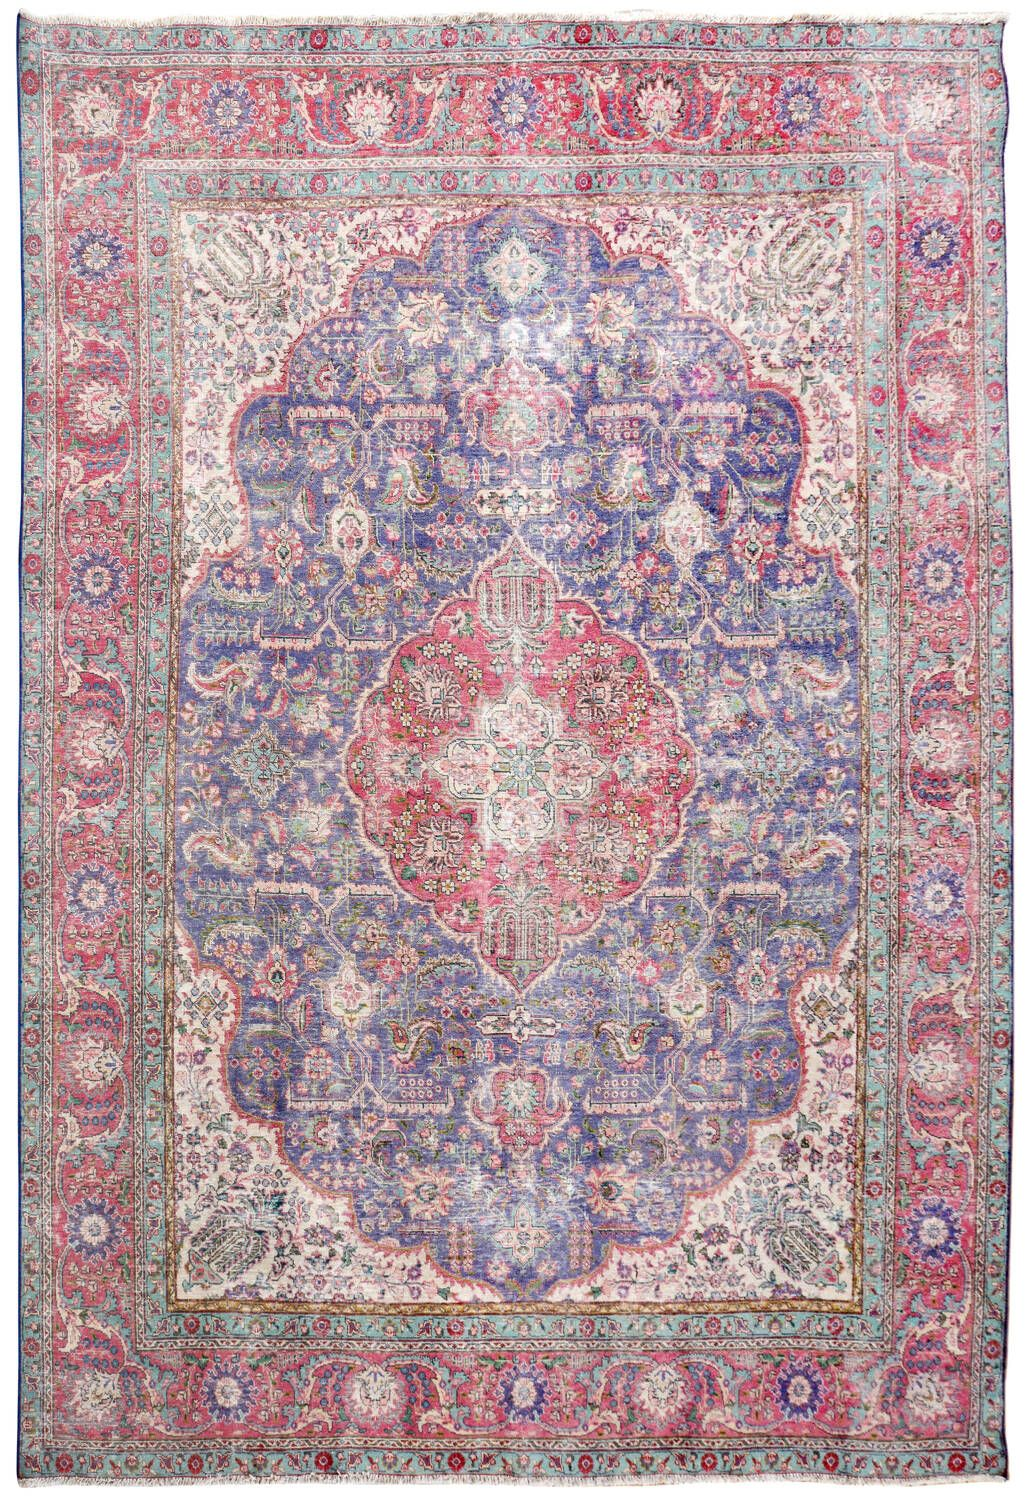 Geometric Tabriz Persian Distressed Area Rug 10x12 In 2020 Area Rugs Rugs Geometric